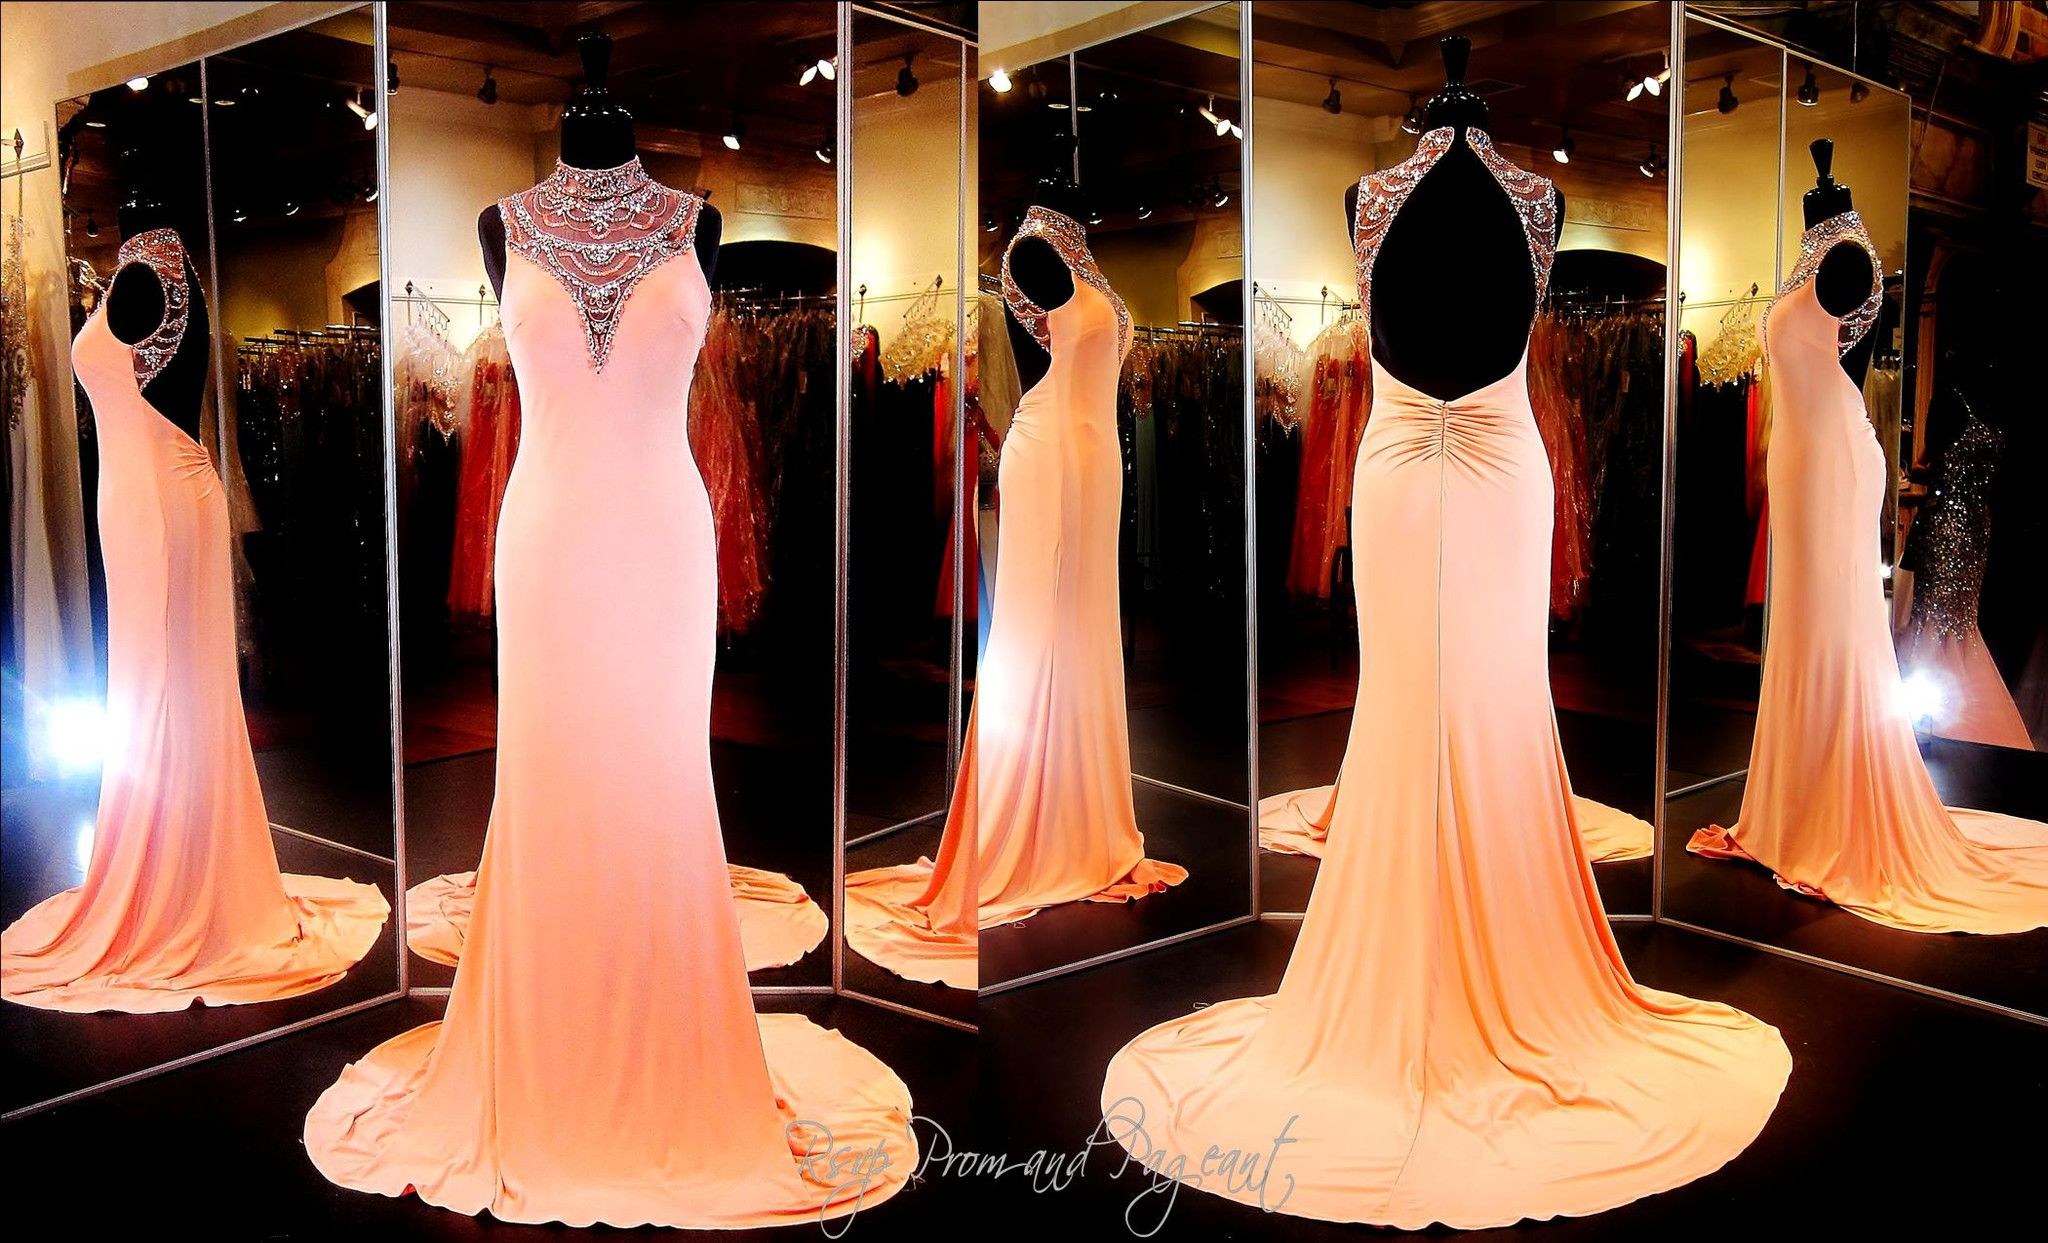 Coral Jersey Prom or Pageant Dress-High Beaded Neckline-Low Open Back-115BP0X23200375 at Rsvp Prom and Pageant, Atlanta, GA